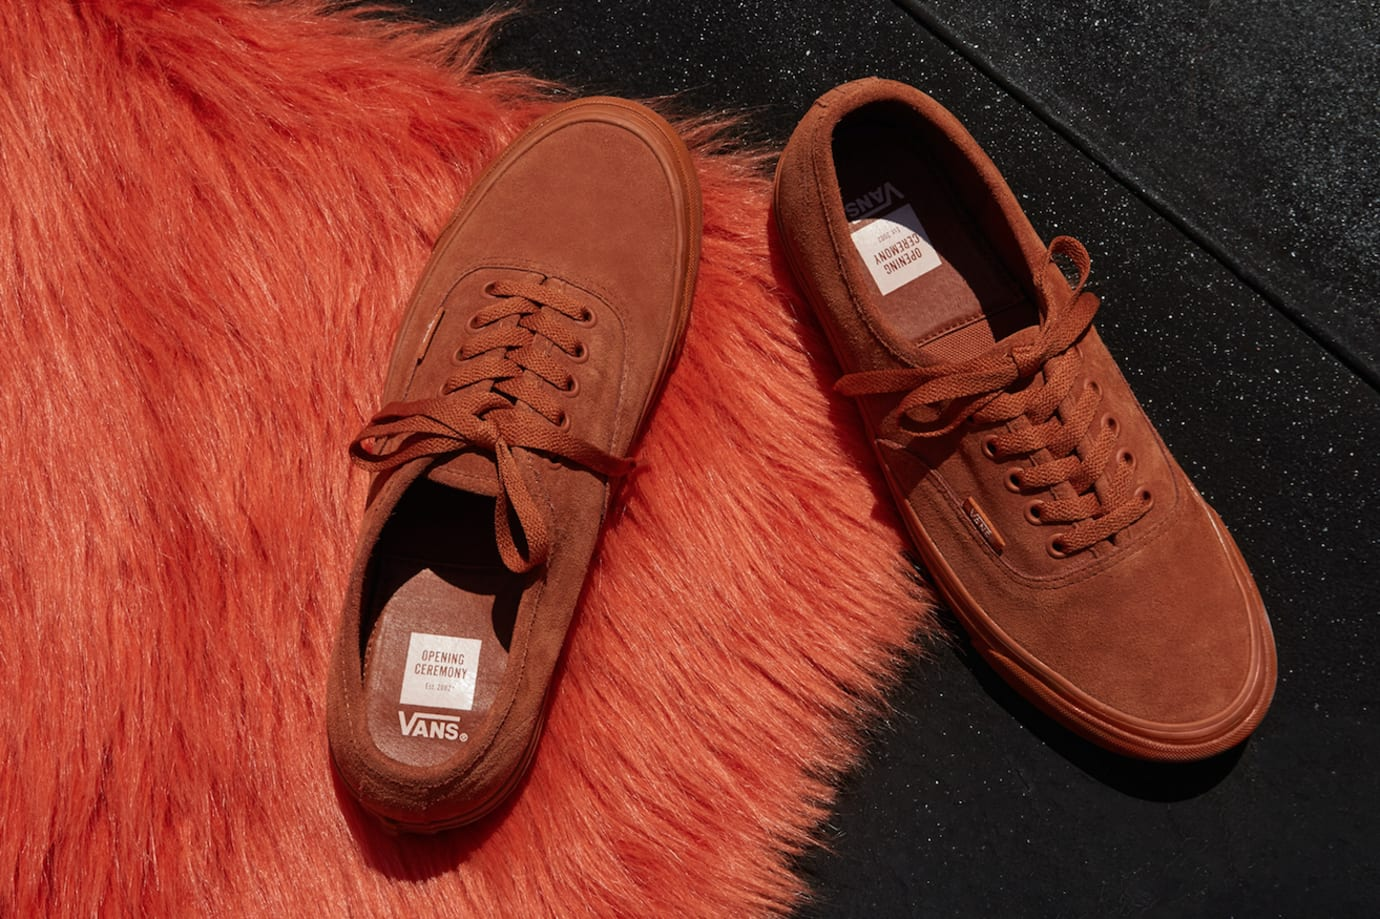 445b42f209 Image via Opening Ceremony Opening Ceremony Vans Suede Red